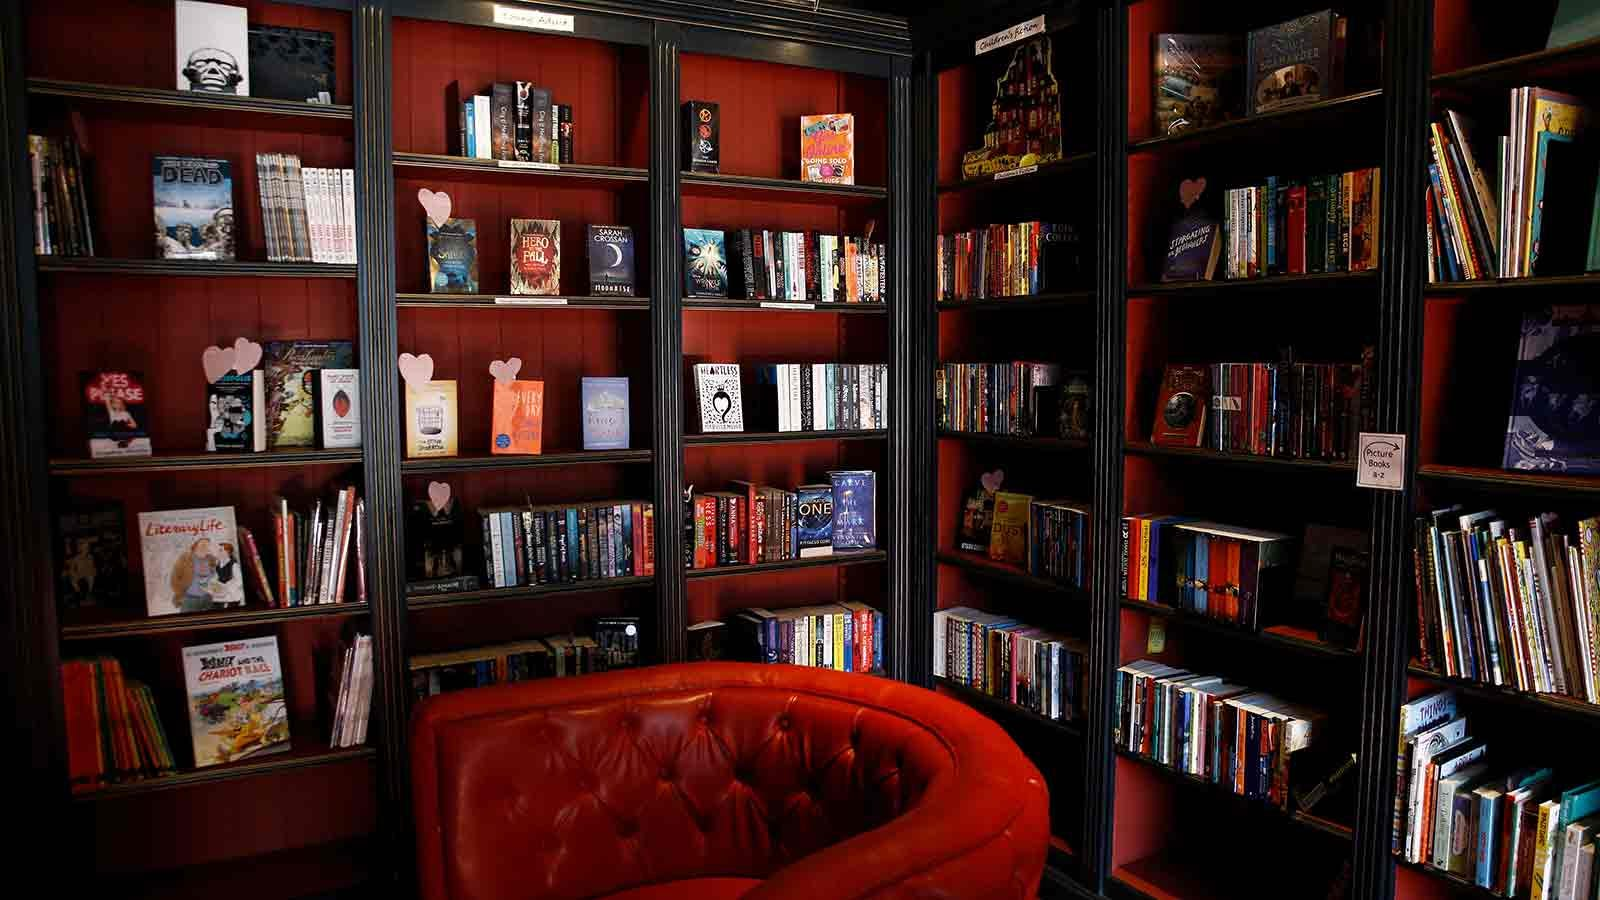 Cozy library corner with a plush overstuffed chair.